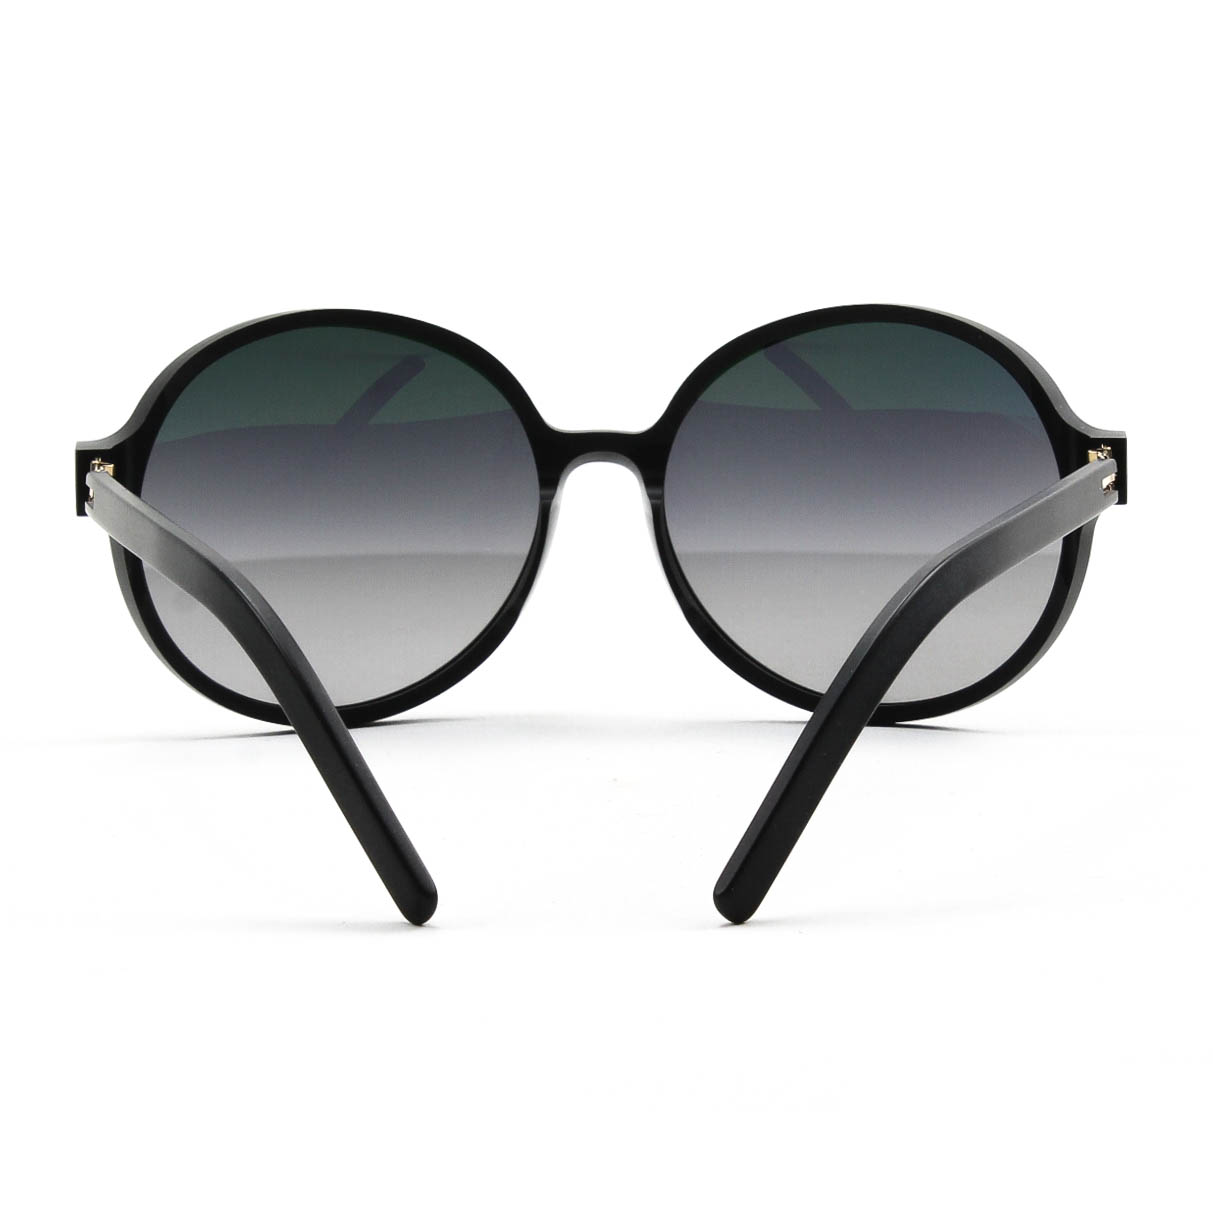 all black aviator sunglasses xqyx  ic! berlin eyewear is a luxury product, designed, handcrafted, and  hand-finished piece by piece in Berlin Germany At ic! berlin, in order to  guarantee the